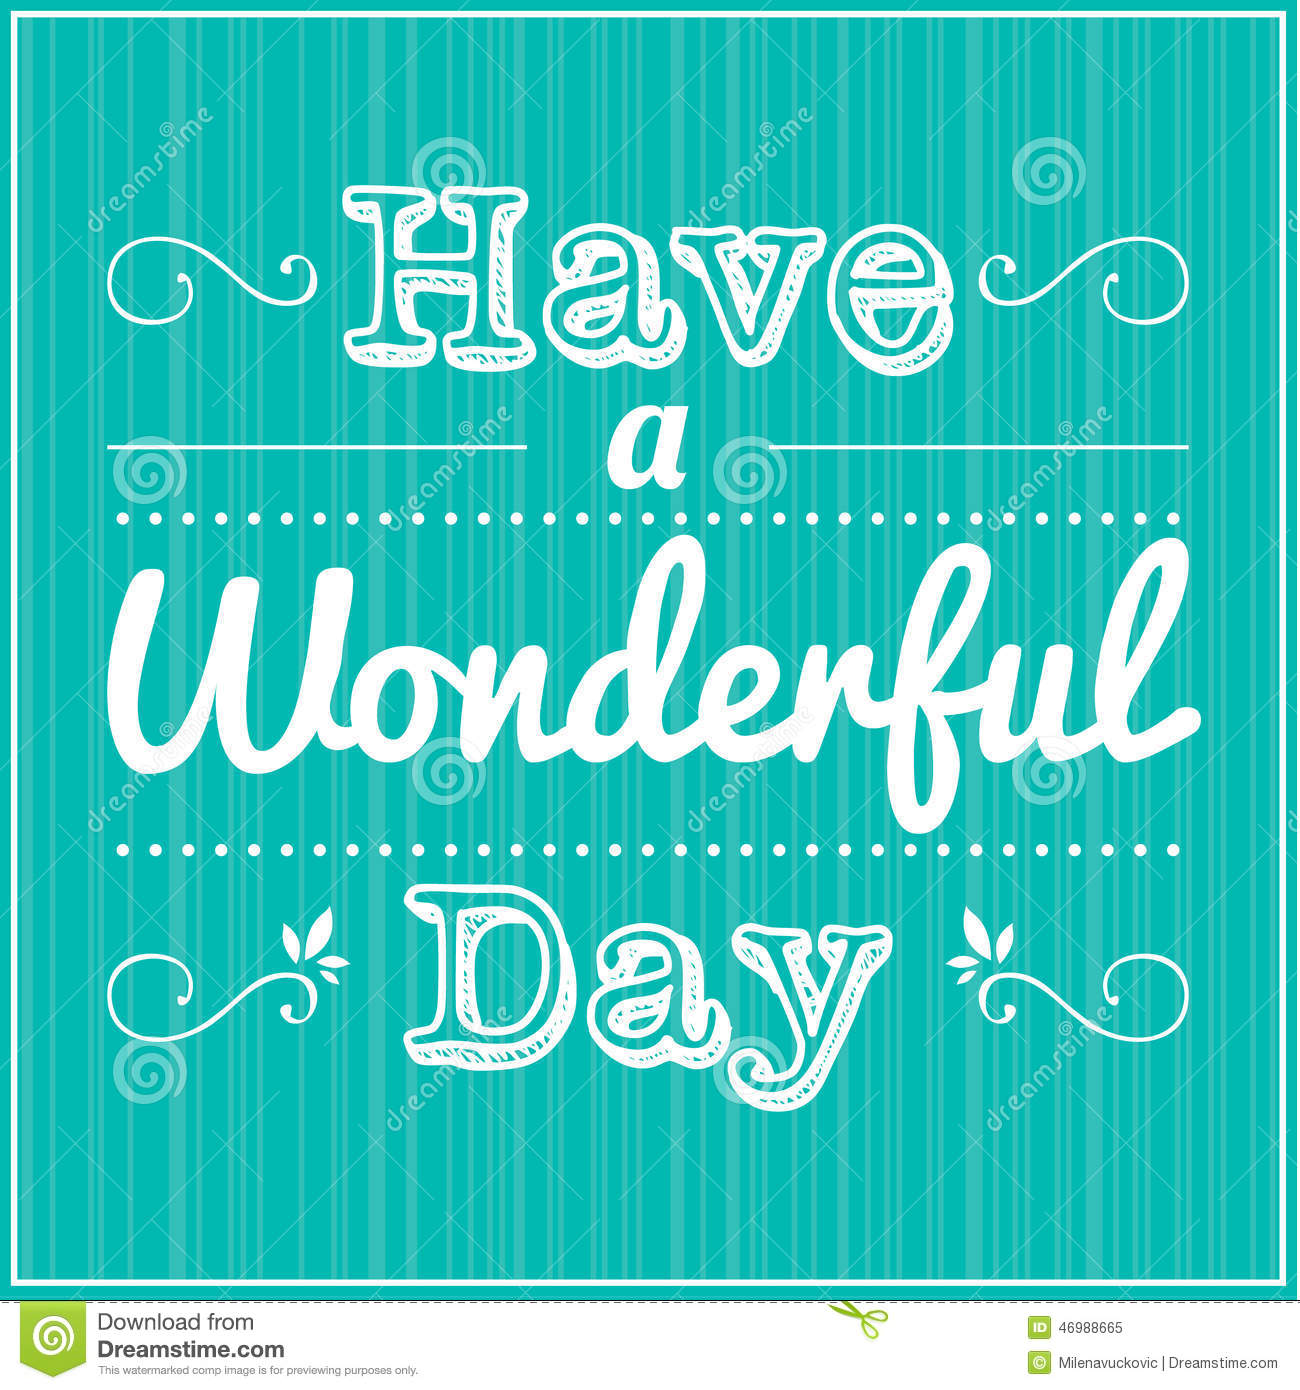 Have A Wonderful Day Stock Vector Illustration Of Card 46988665